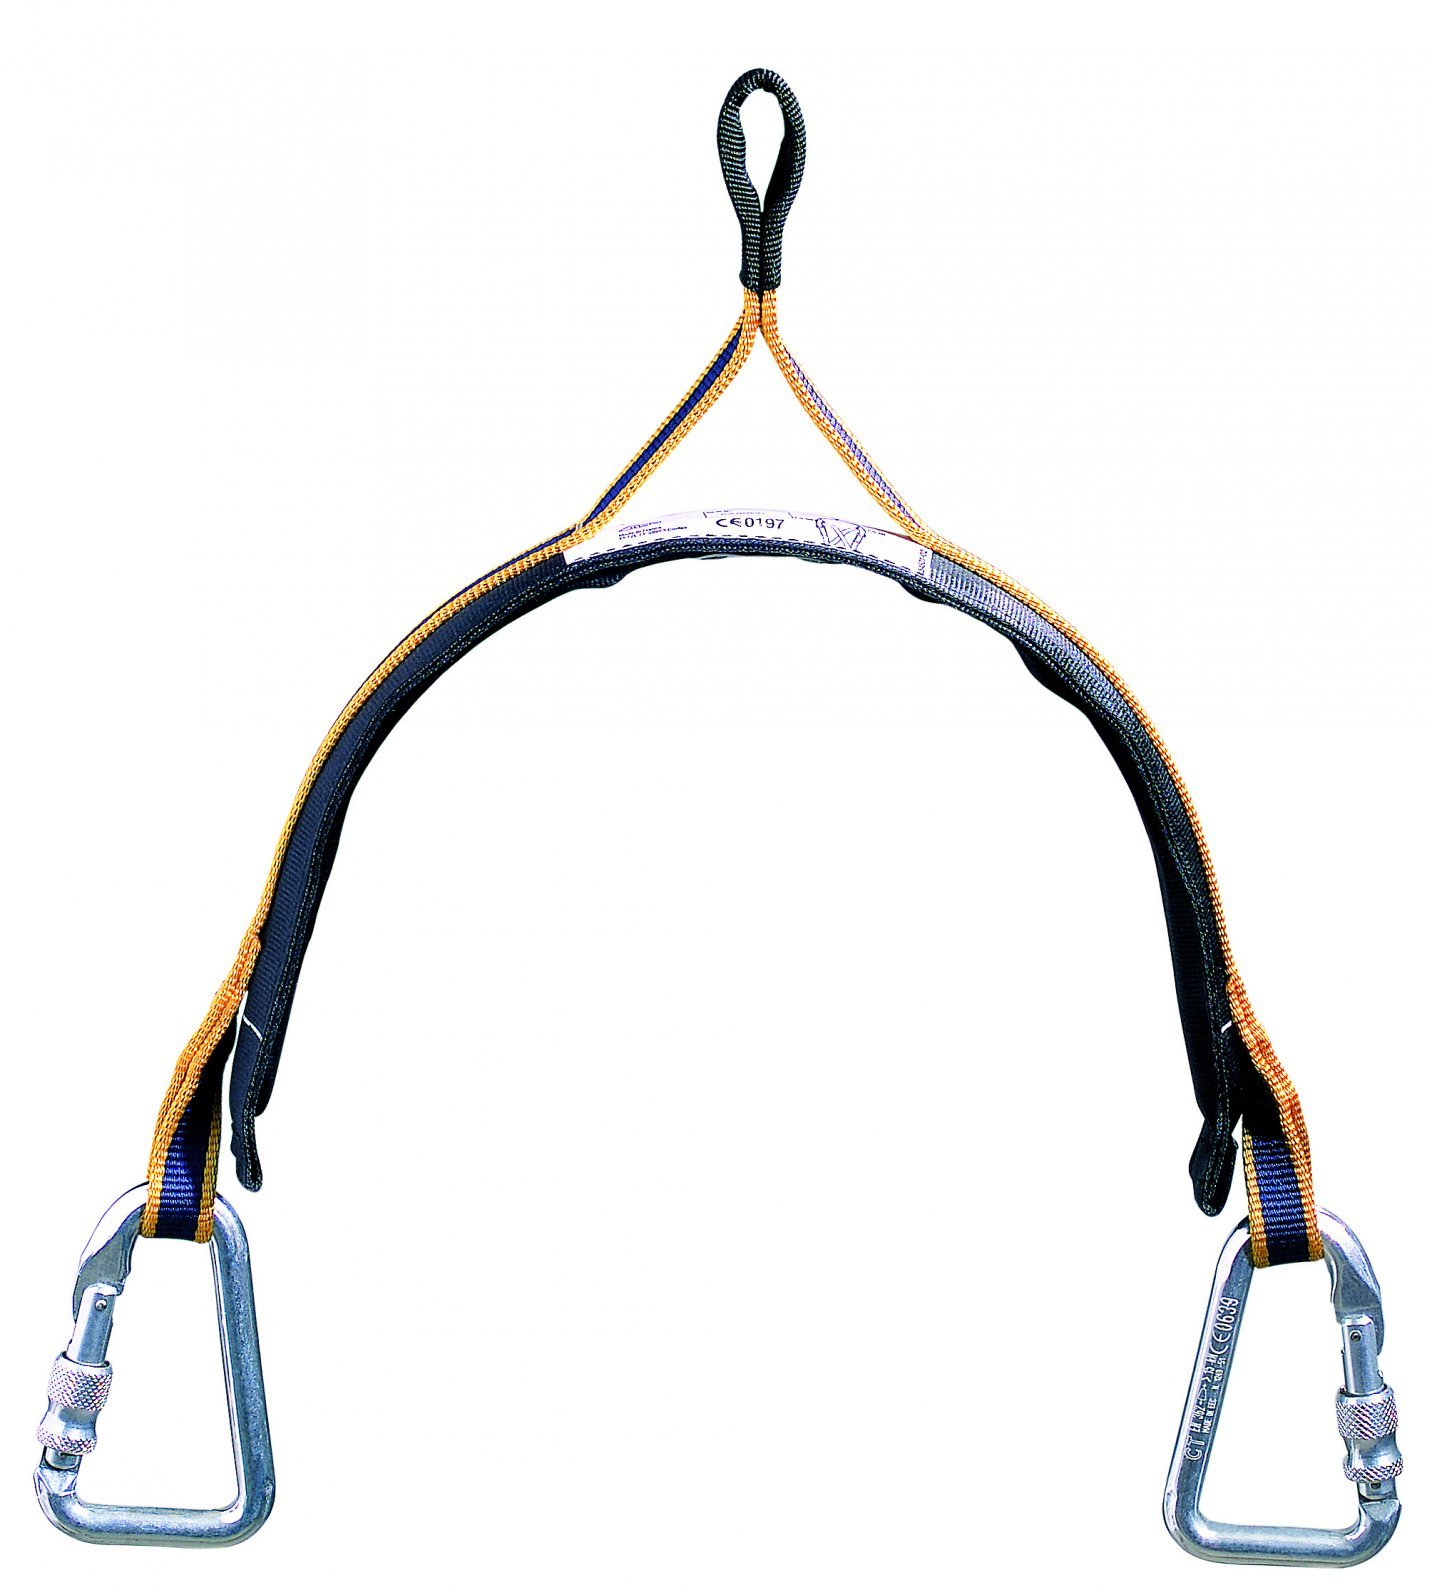 Fall Arrest Harness Accessories